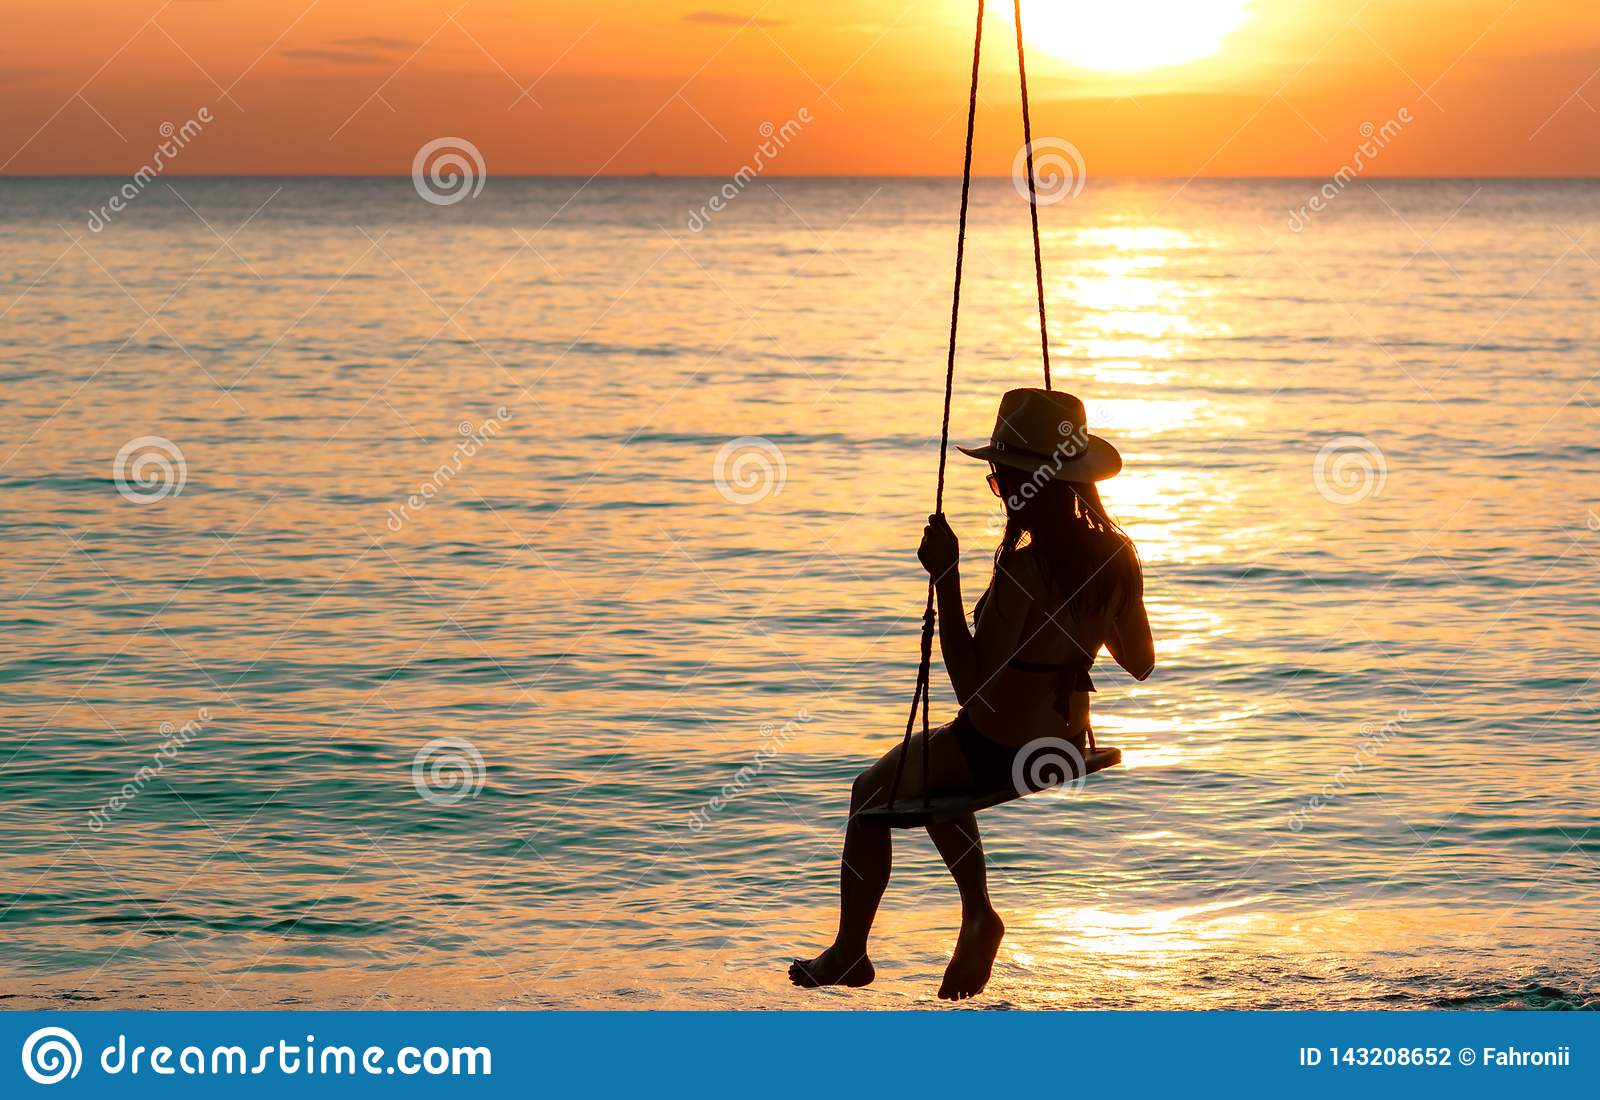 Silhouette woman wear bikini and straw hat swing the swings at the beach on summer vacation at sunset. Enjoying and relaxing girl